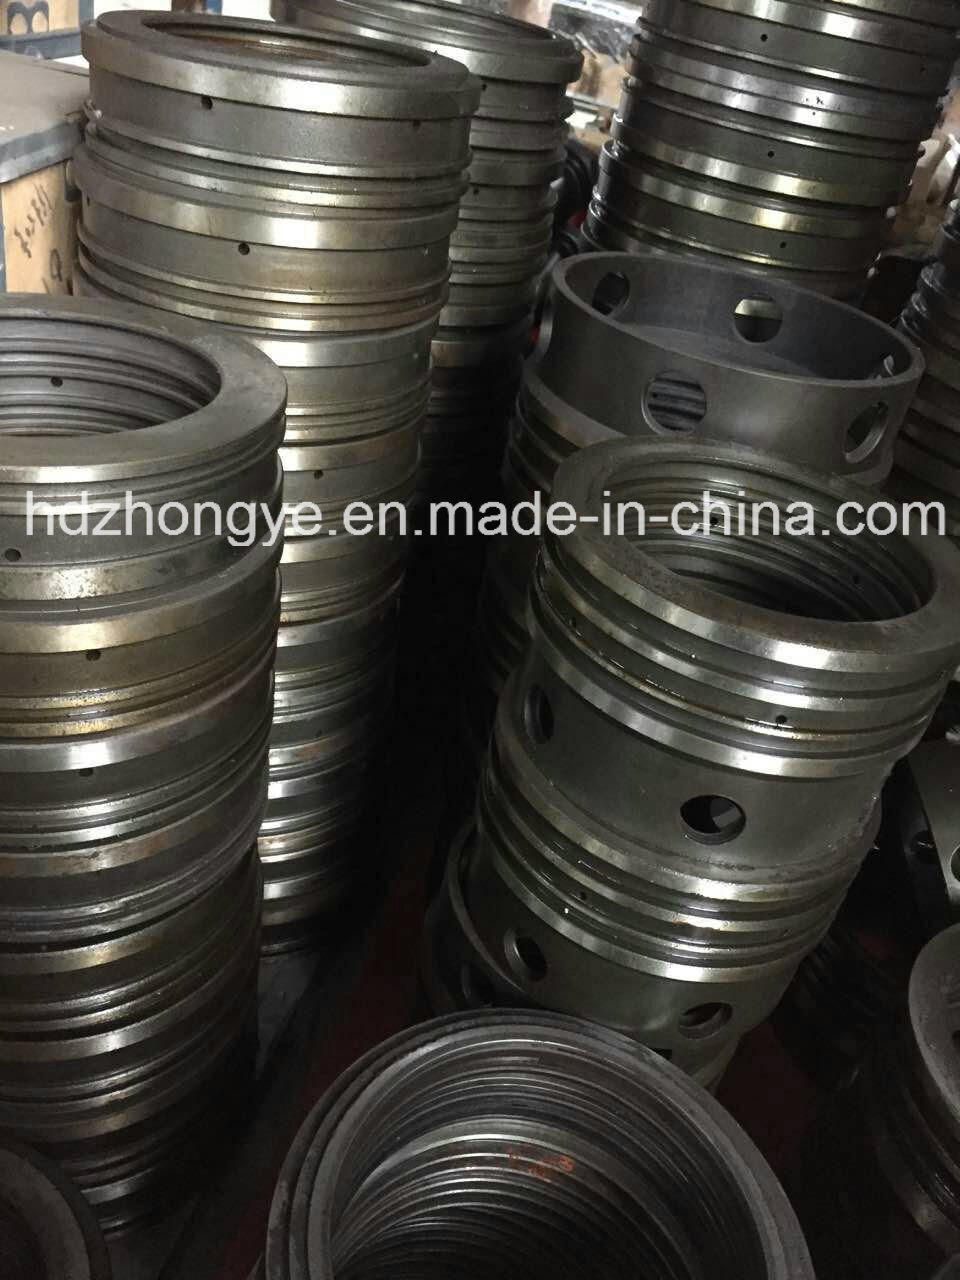 Piston/ Seal Retainer for Hydraulic Breaker Parts